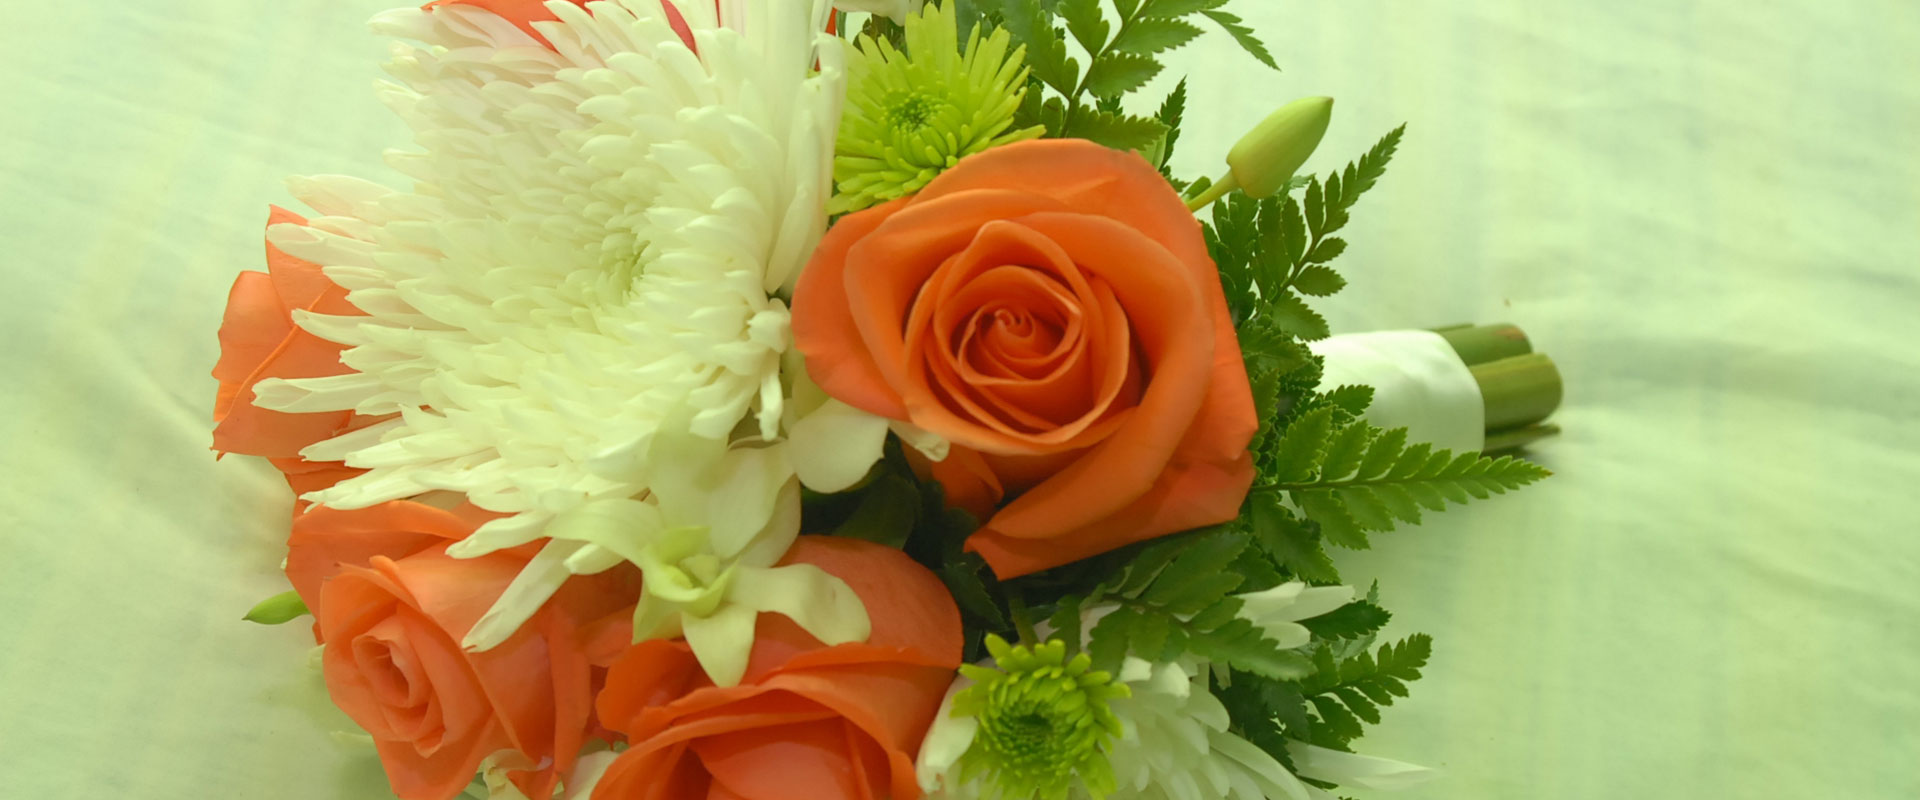 faithful-wedding-gallery-floral-arrangements-1